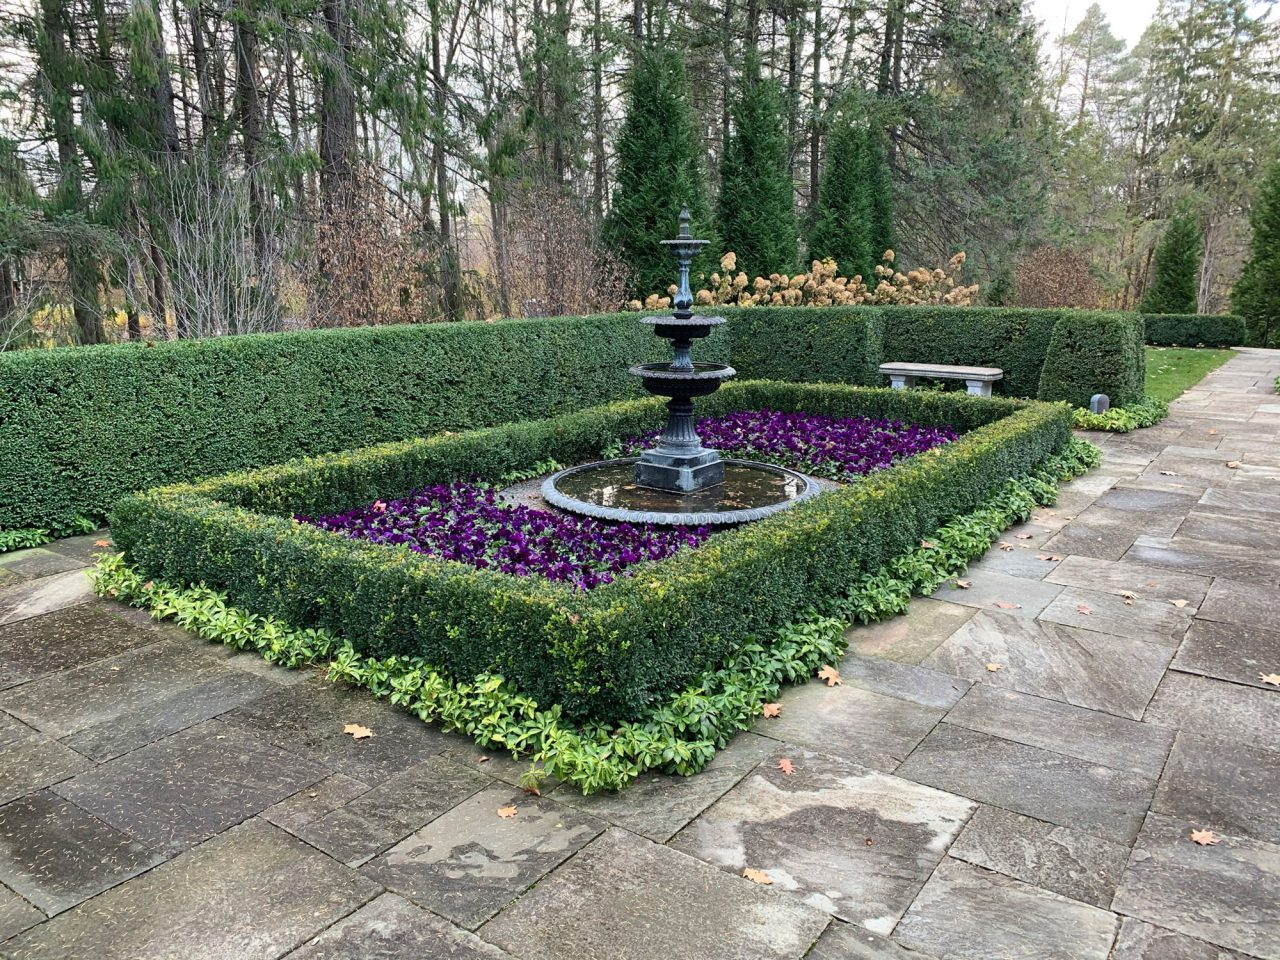 Three-tiered fountain surrounded by boxed hedges, annuals, and groundcover